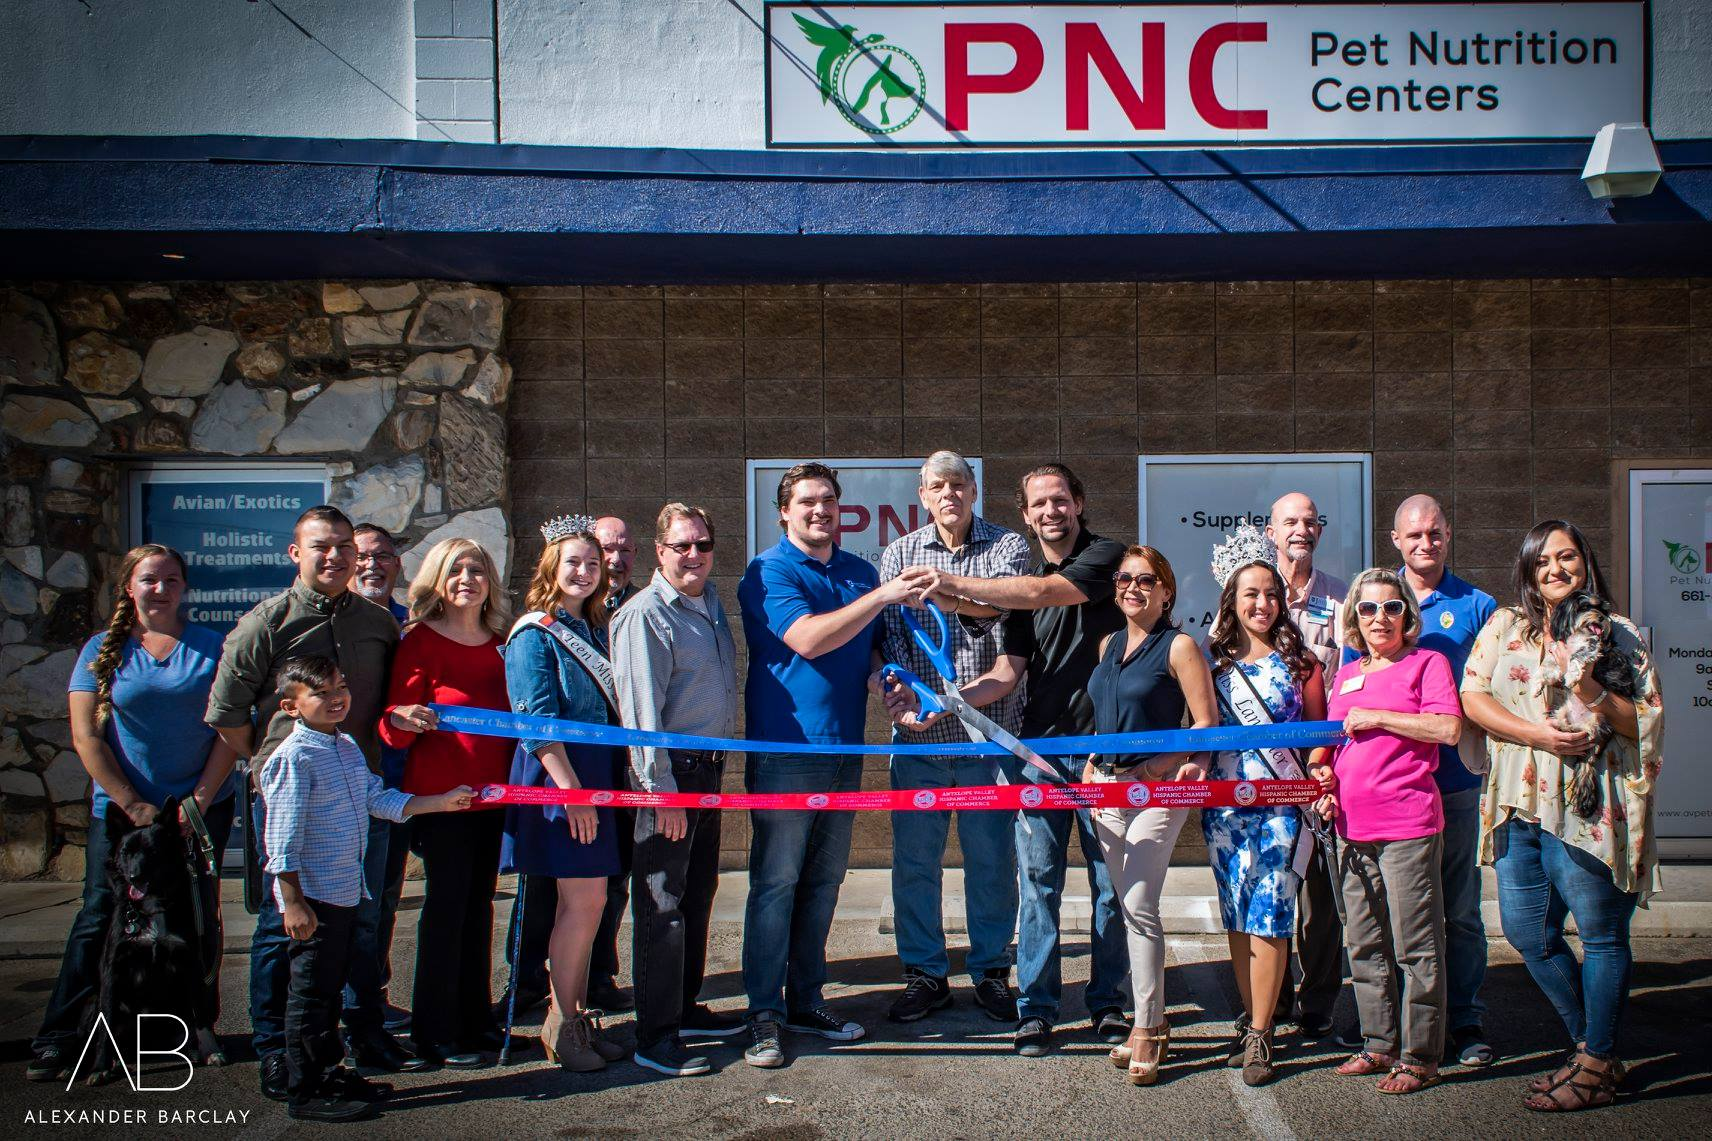 Pet Nutrition Centers is now open! Stop by and say hey! Directly next (and connected) to North Valley Veterinary Center. They carry the highest quality of food, supplements and treats. Along with many unique and fun accessories.